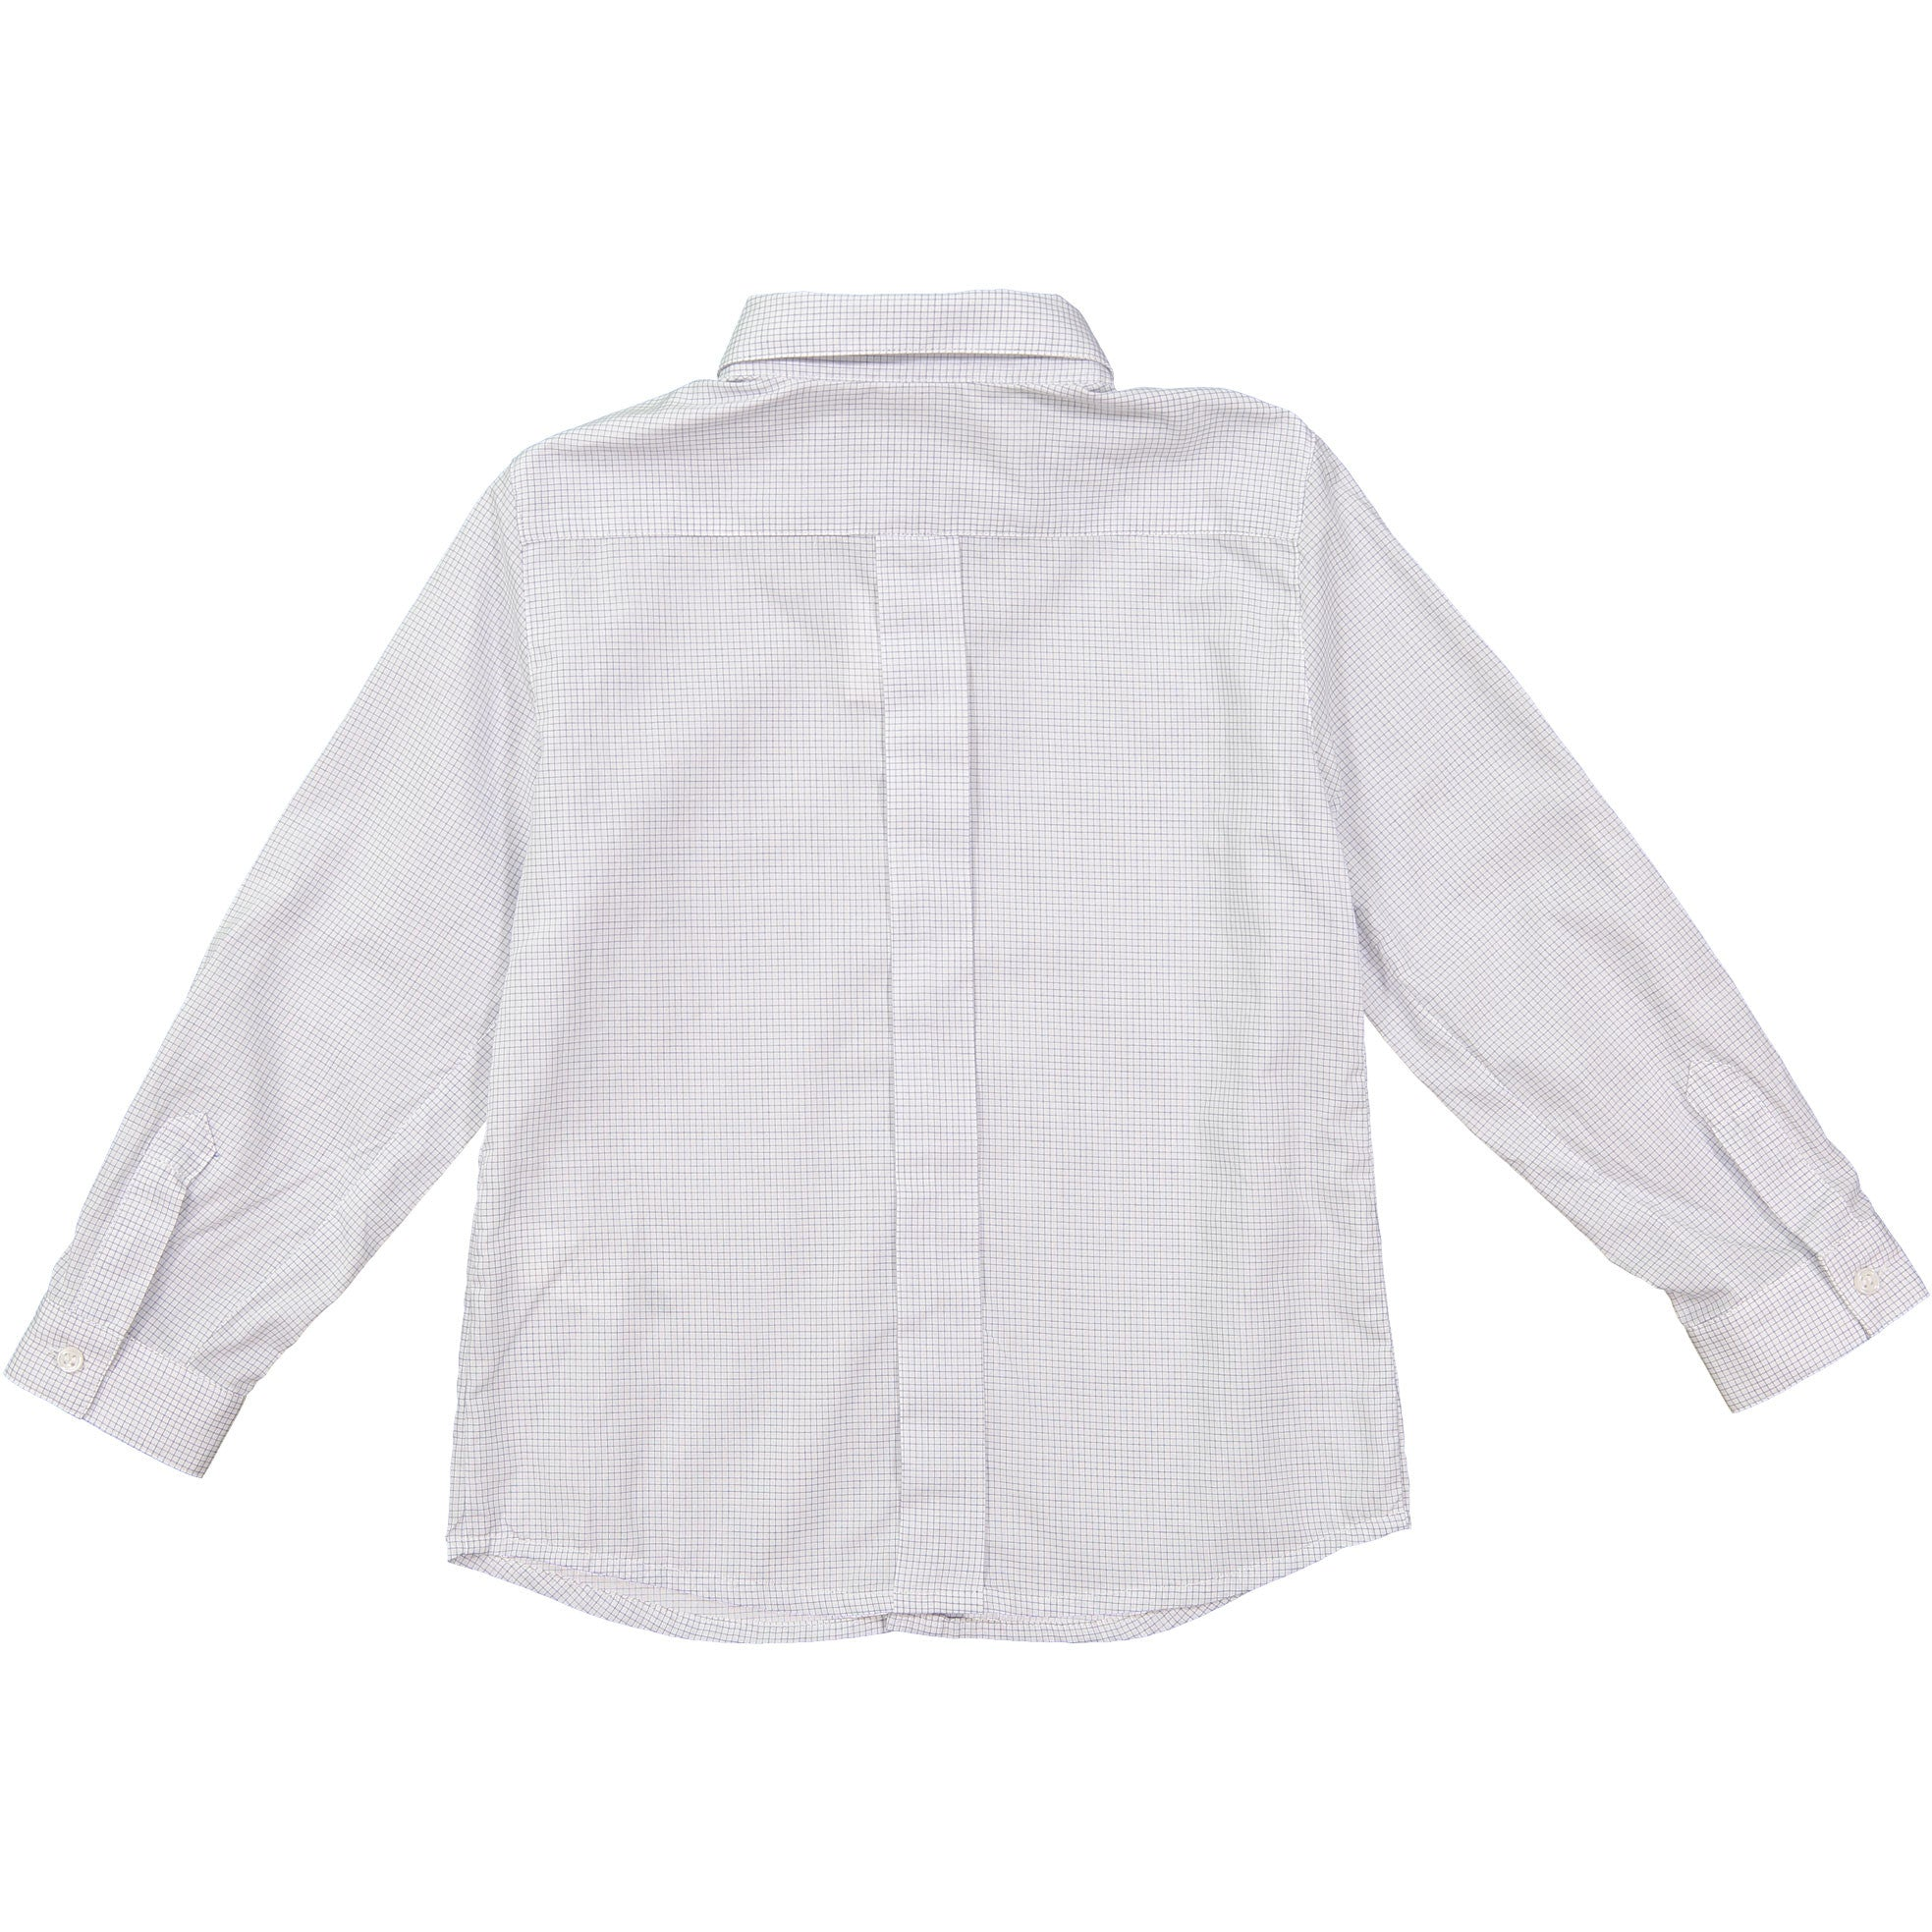 Bonpoint Blue Check Collared Shirt - Ladida